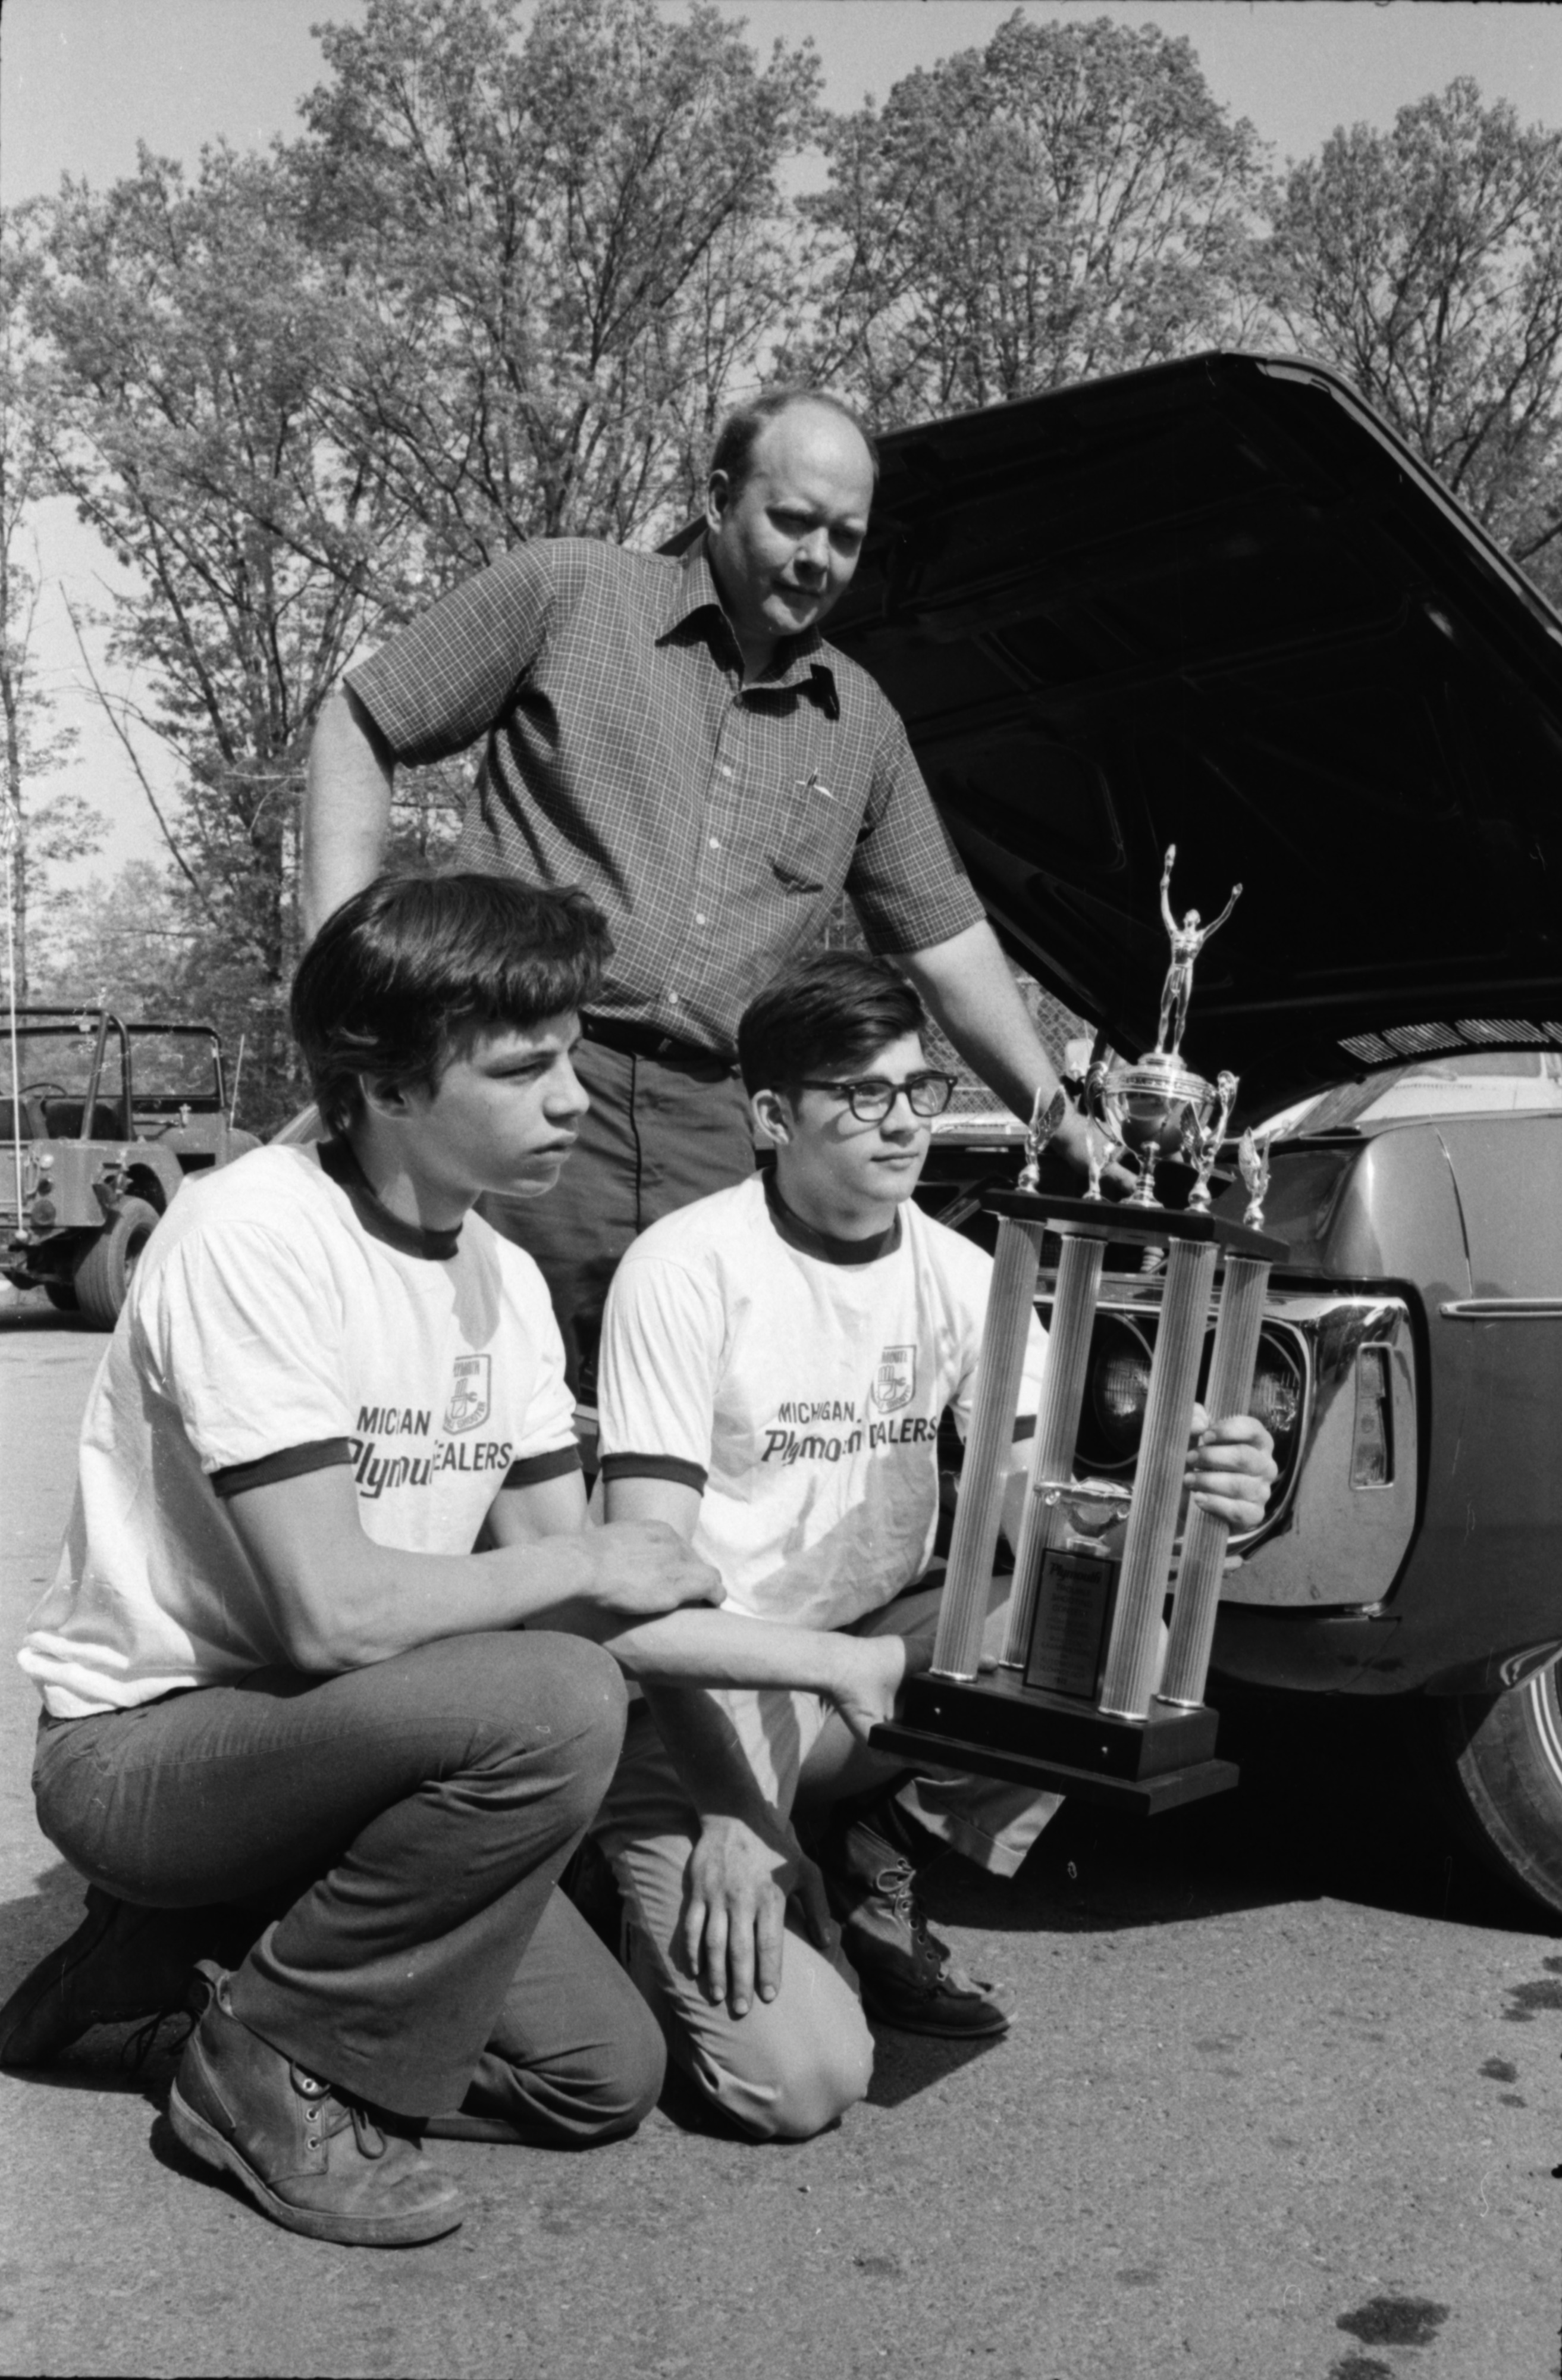 Two Students Receive Trophy for Top Mechanics at Huron High School, June 1972 image